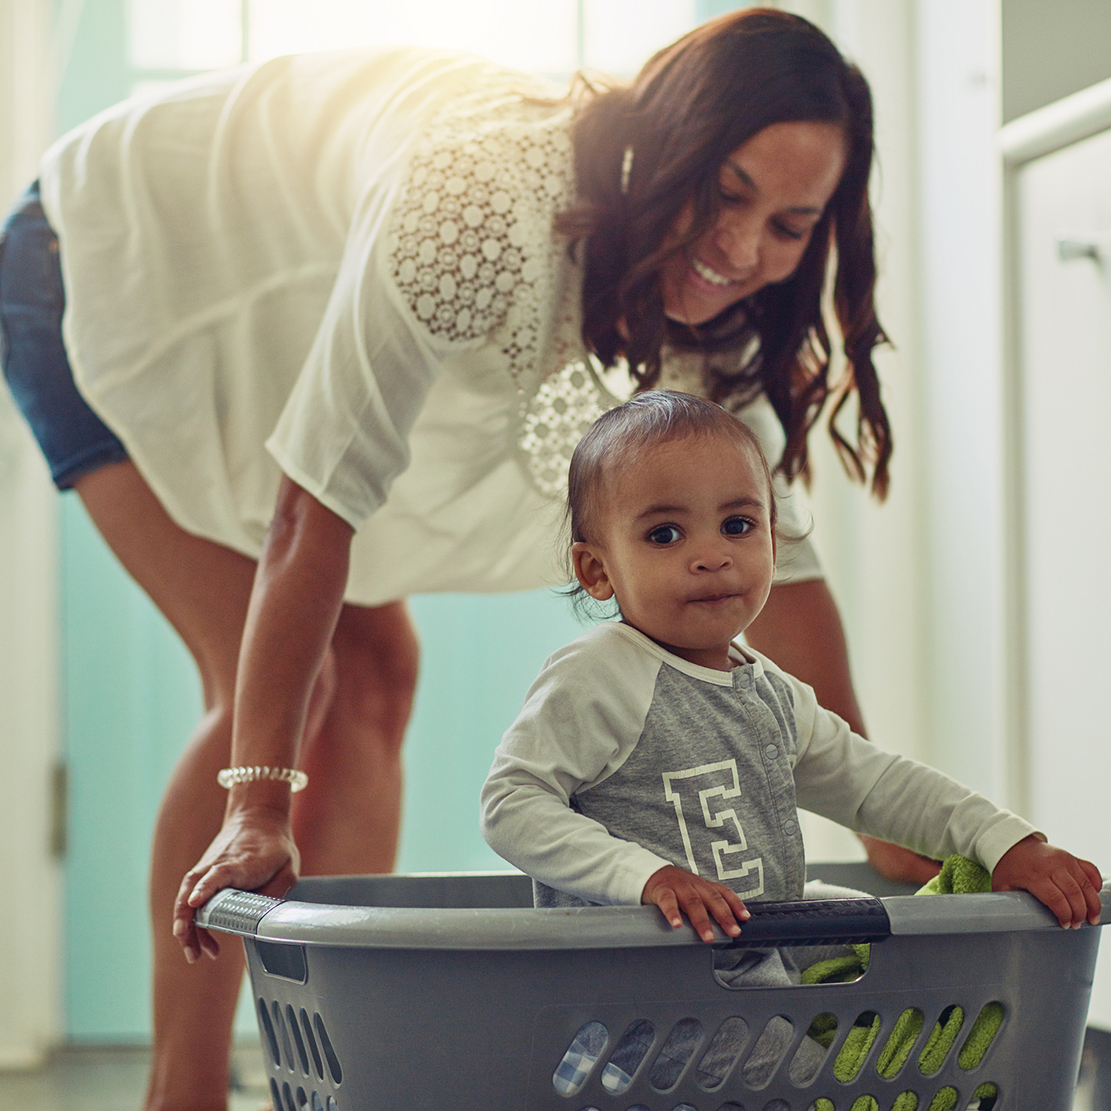 mother pushing around her baby in a laundry basket